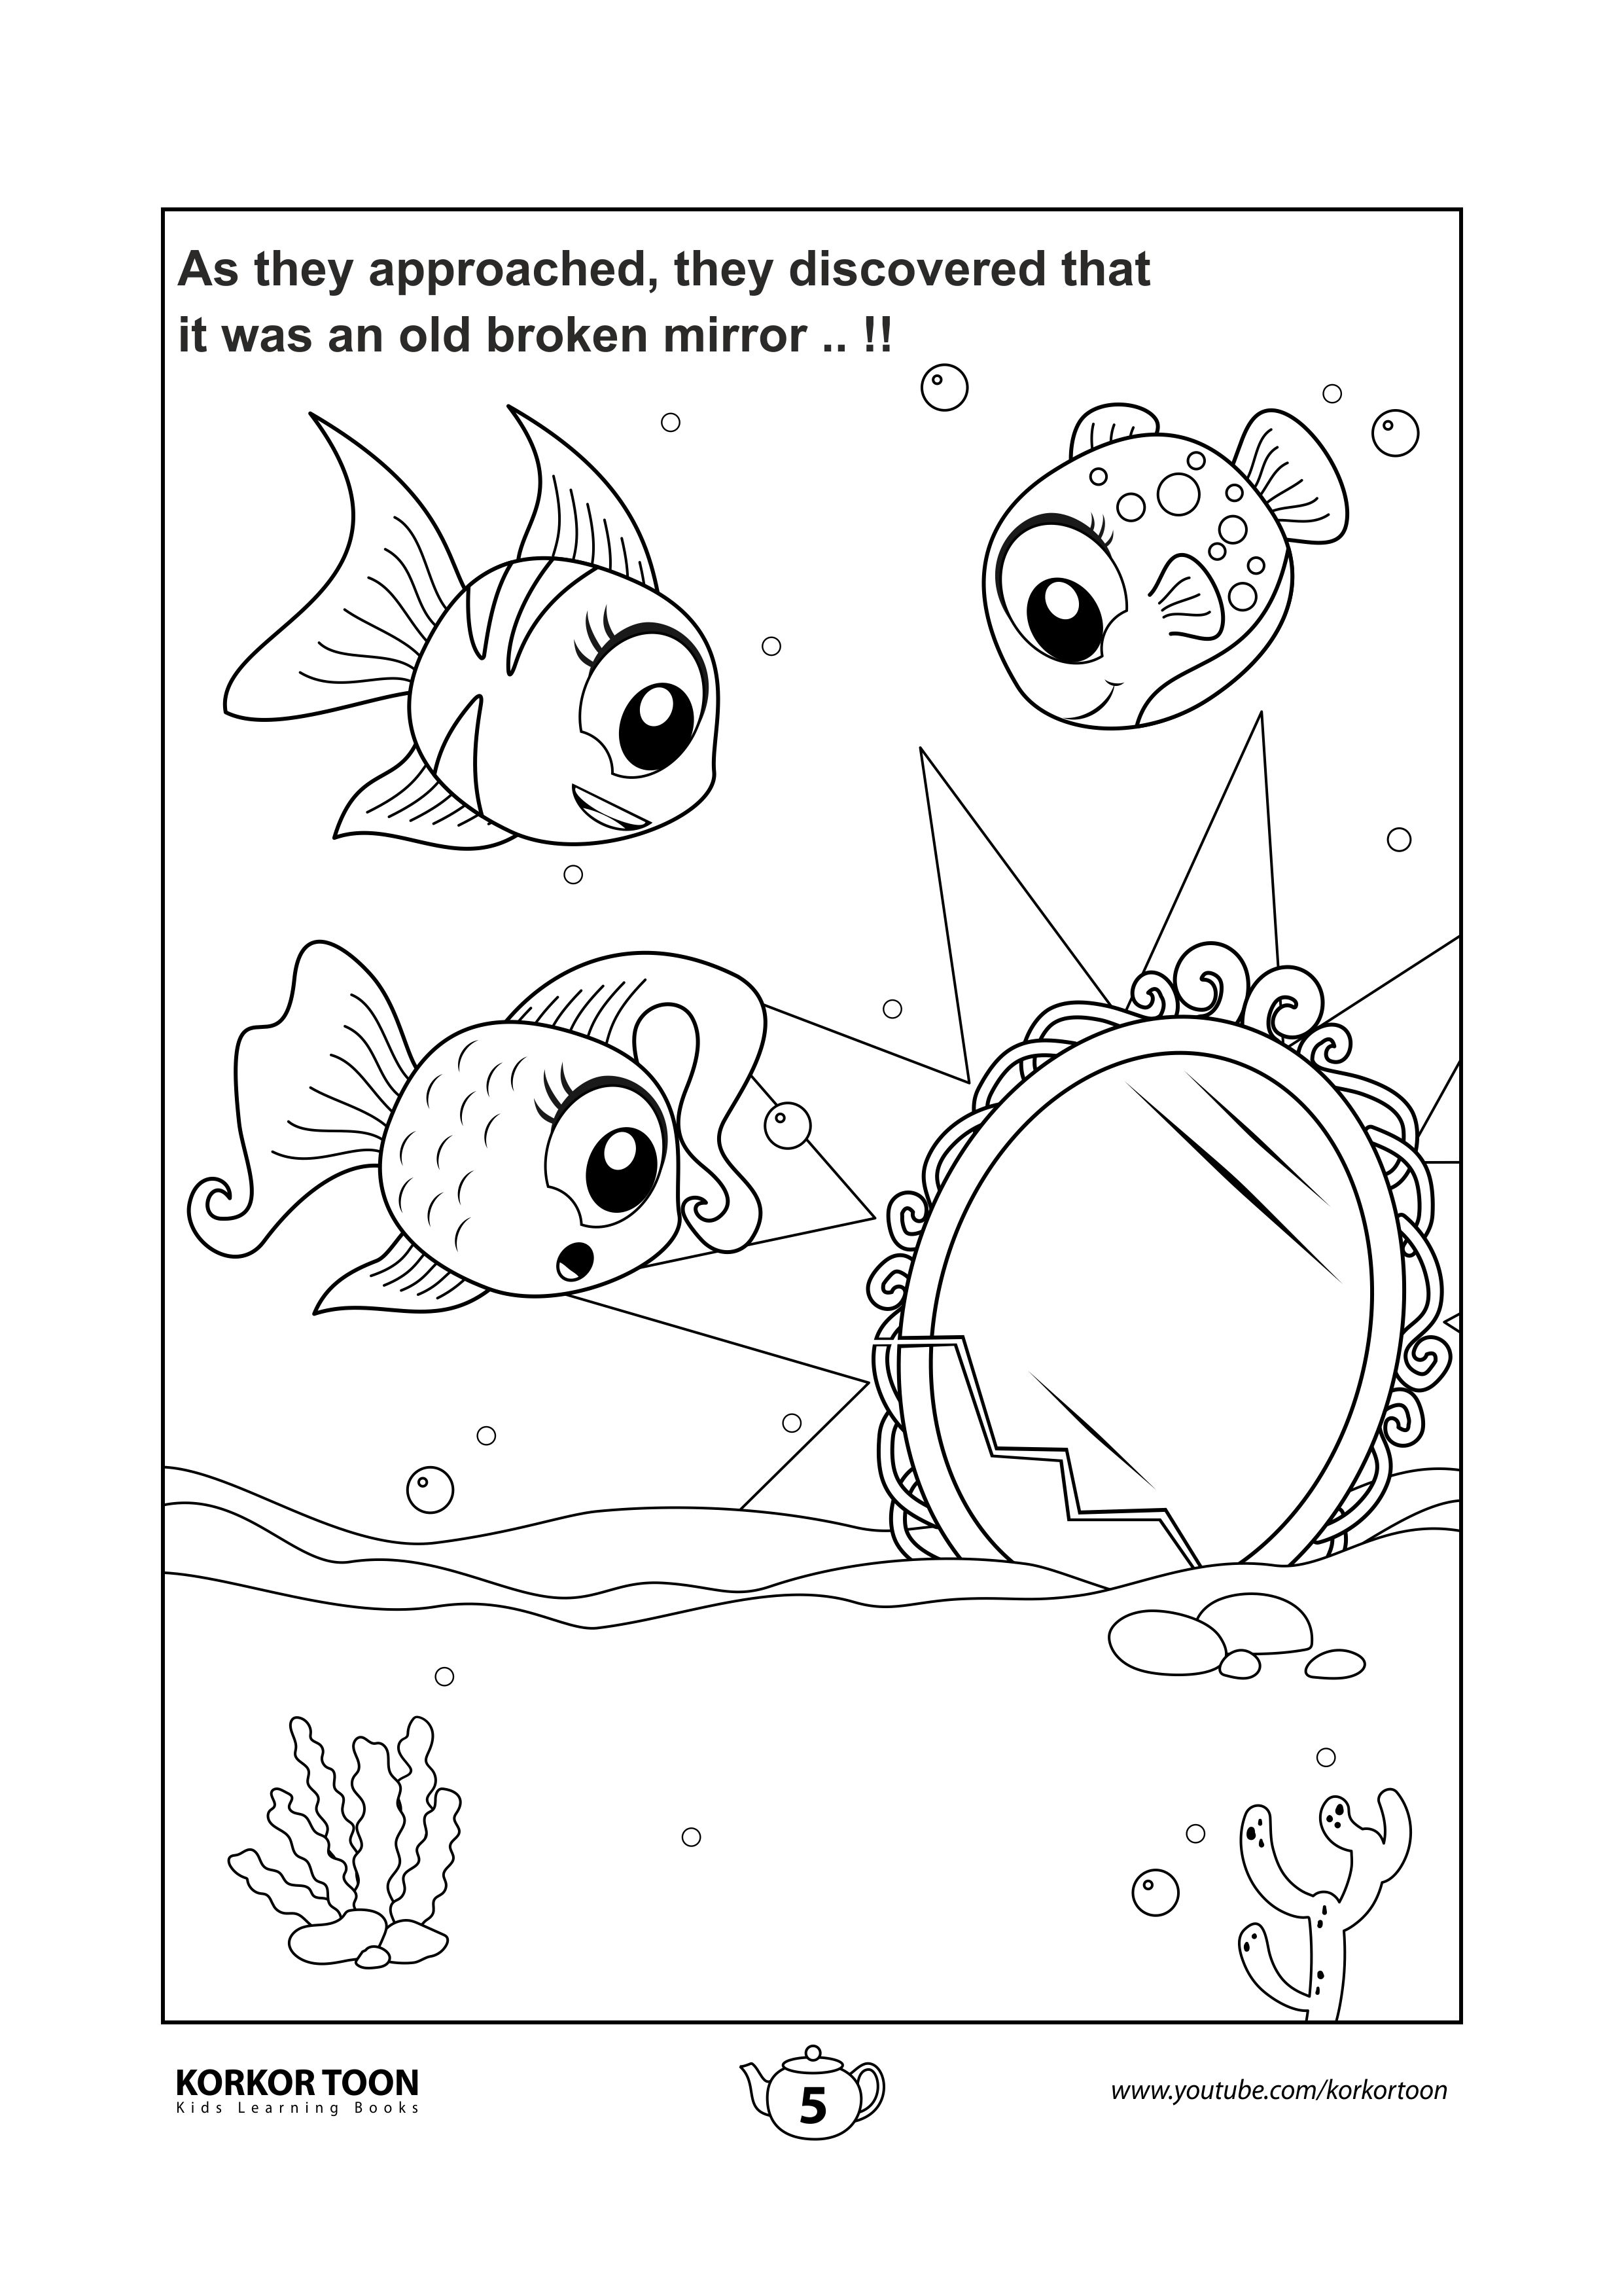 Coloring Page 5 The Special Fish Story Coloring Book Coloring Books Kids Coloring Books Easy Coloring Pages